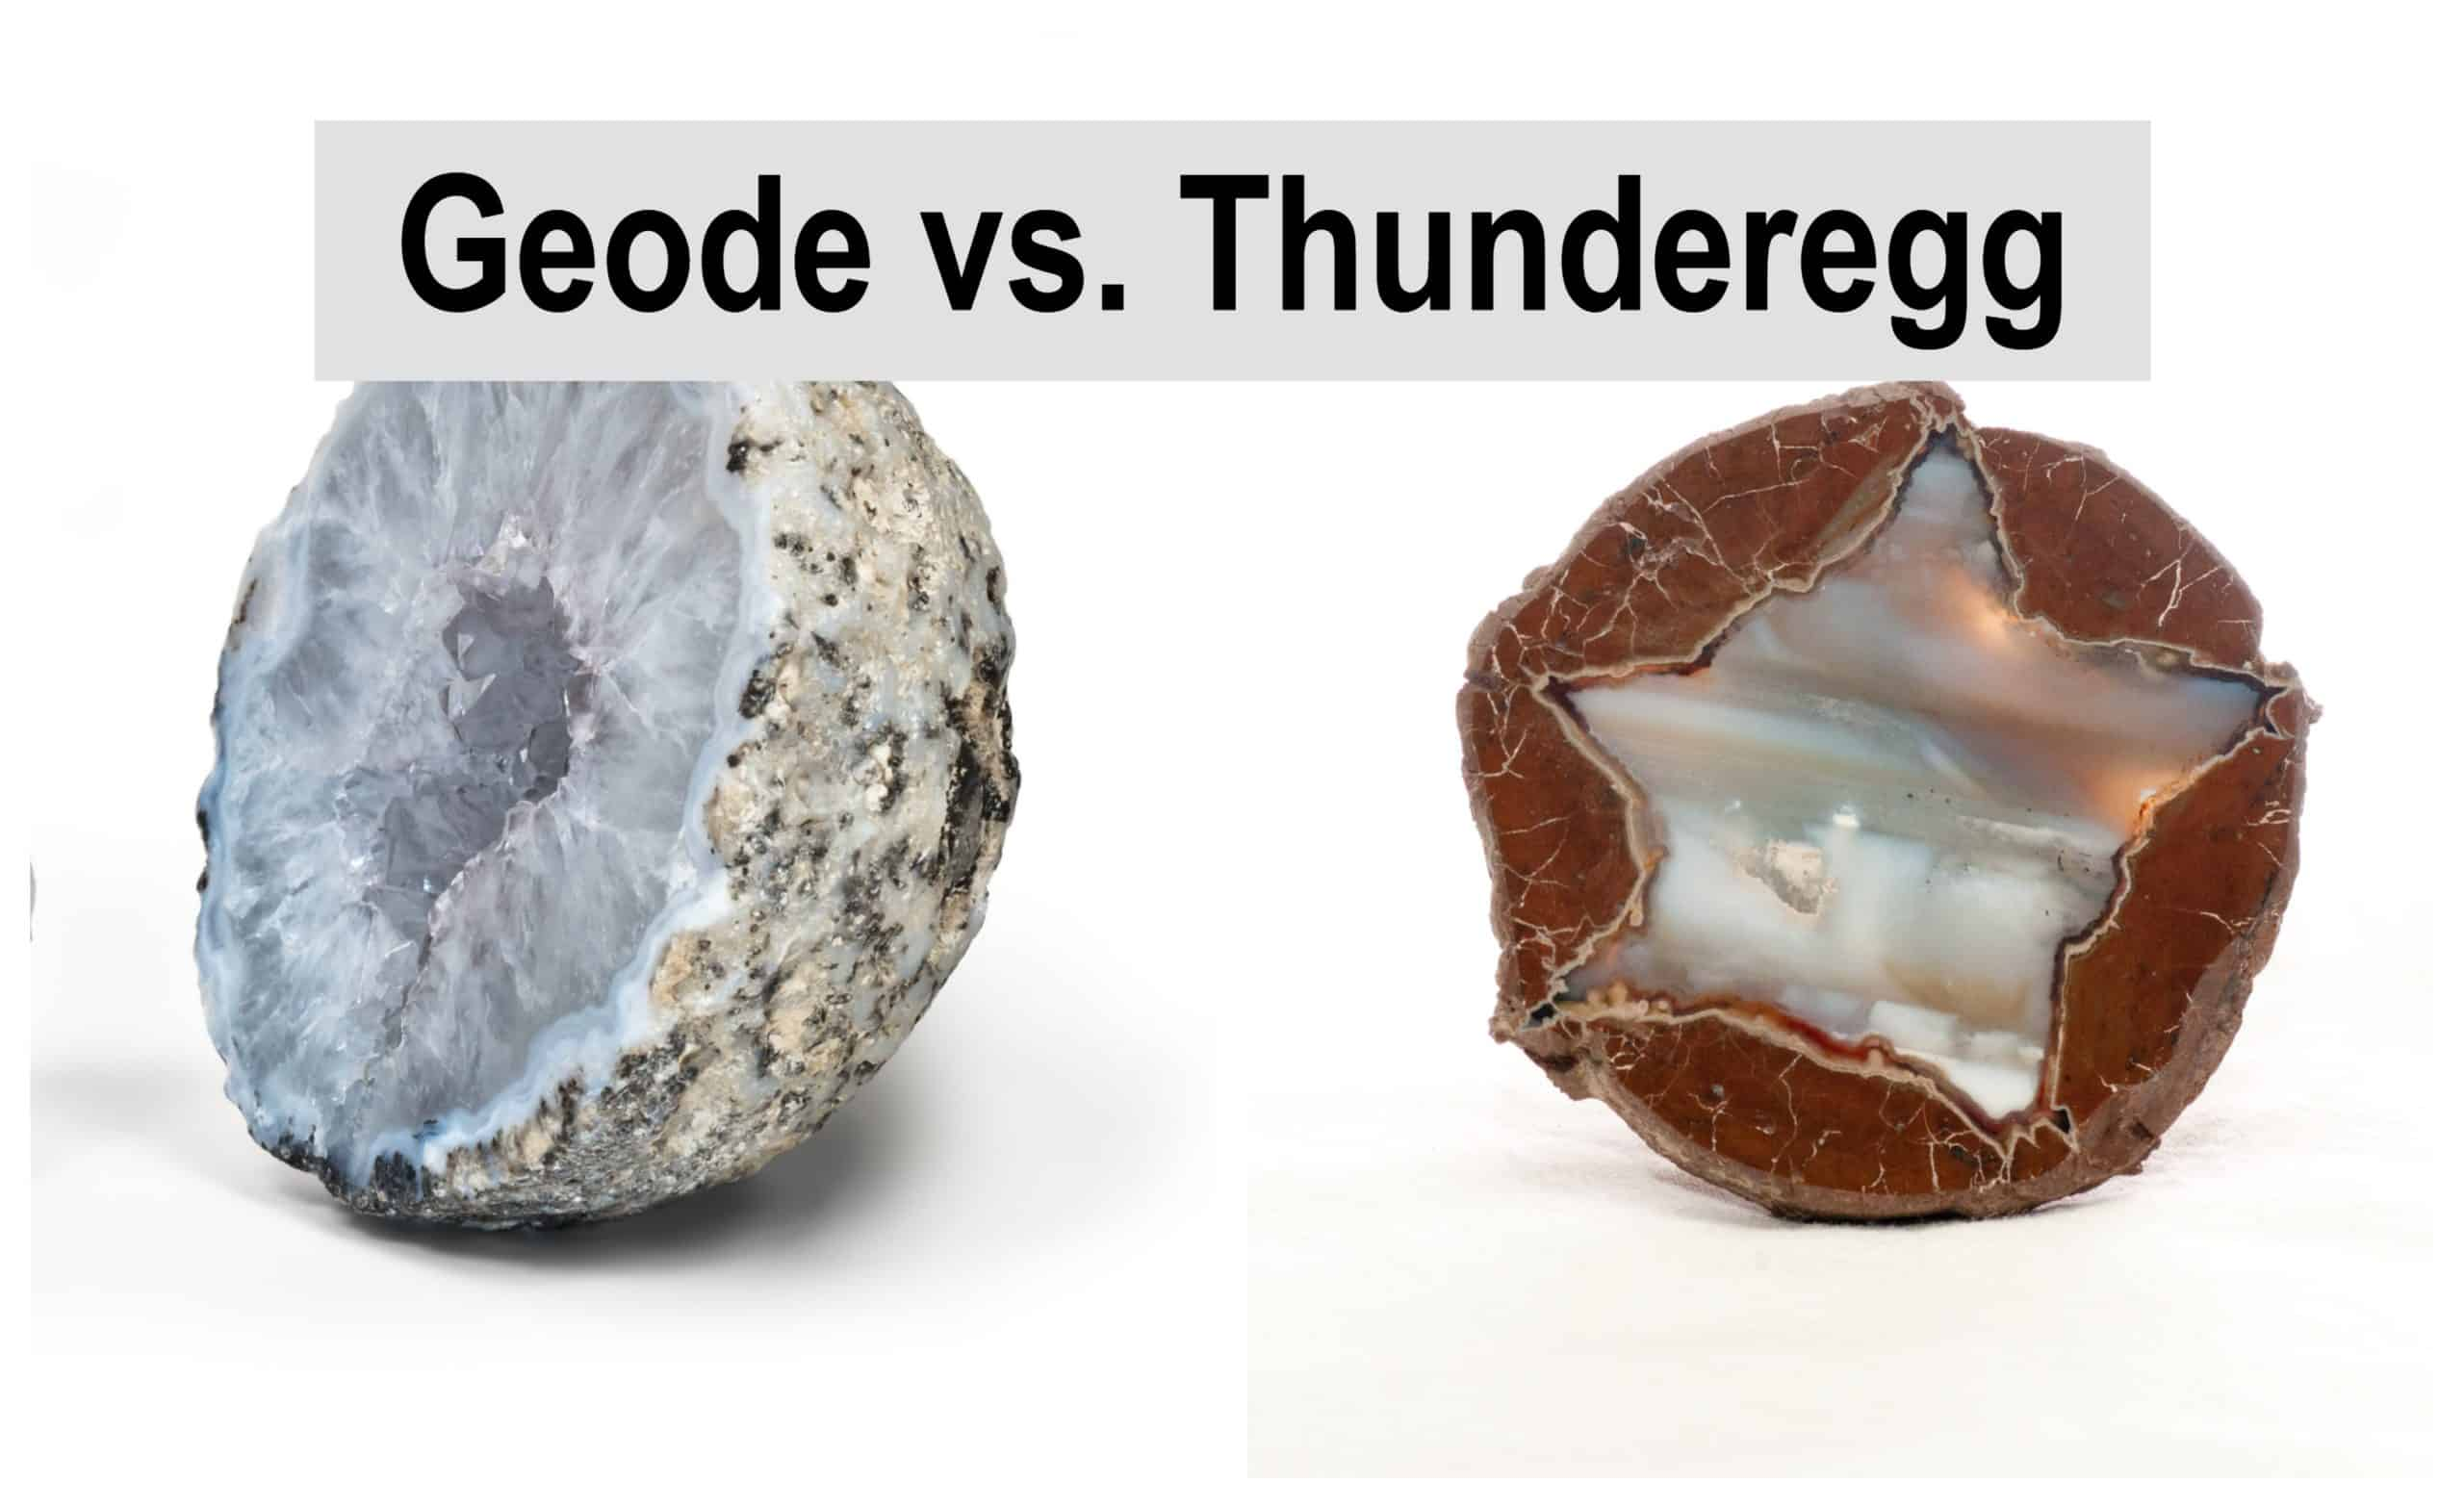 Geode vs. Thunderegg: What is the difference?